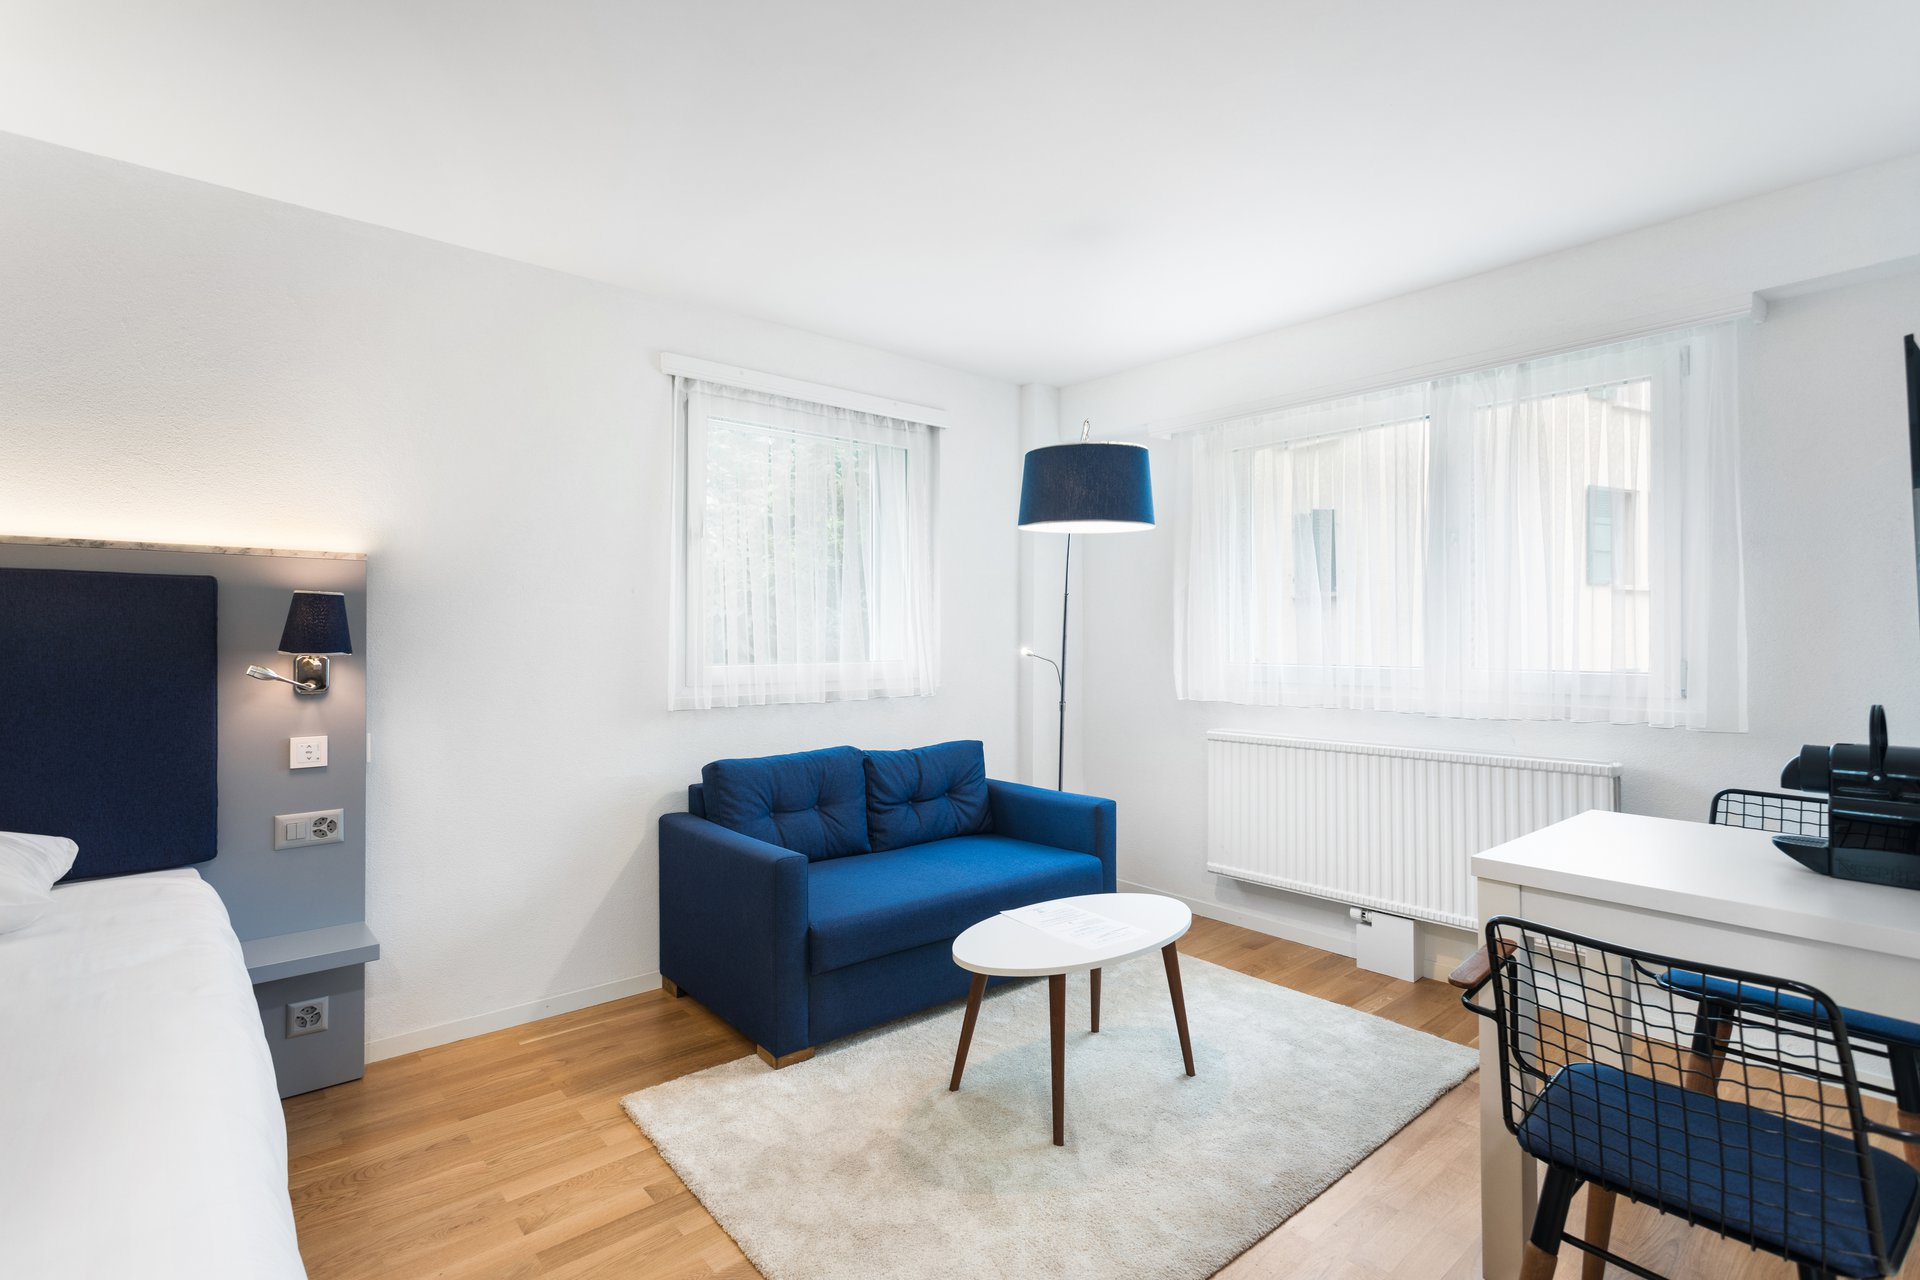 Cozy apartment, close to all amenities on the heights of Lausanne in La Sallaz. This convenient and green family neighborhood